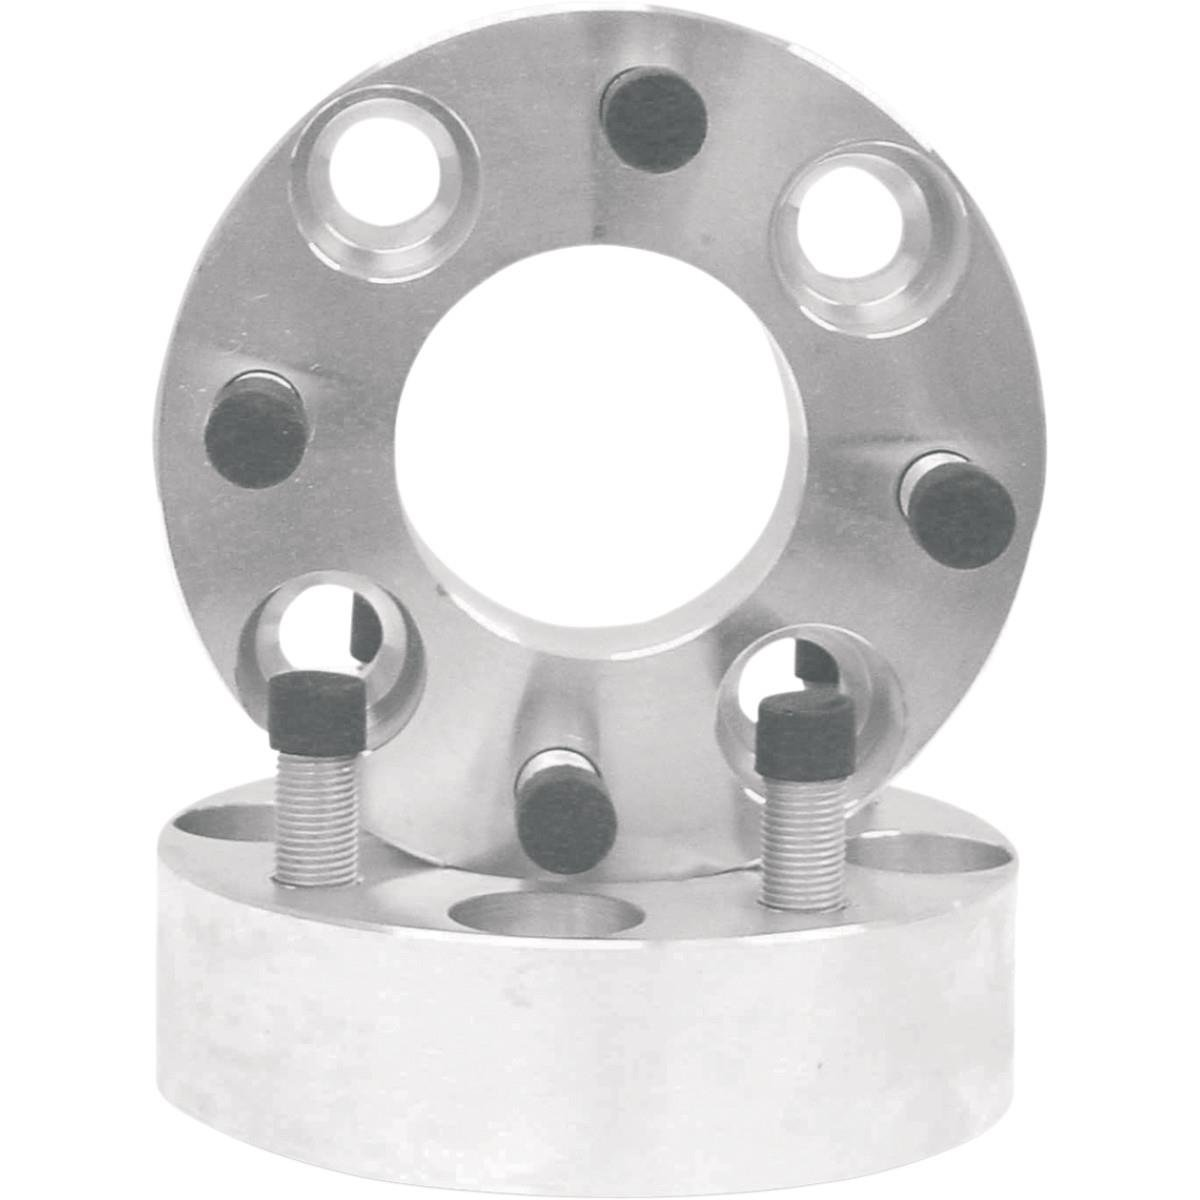 High Lifter Wheel Spacers One Pair 2 4//115 10mmx1.25